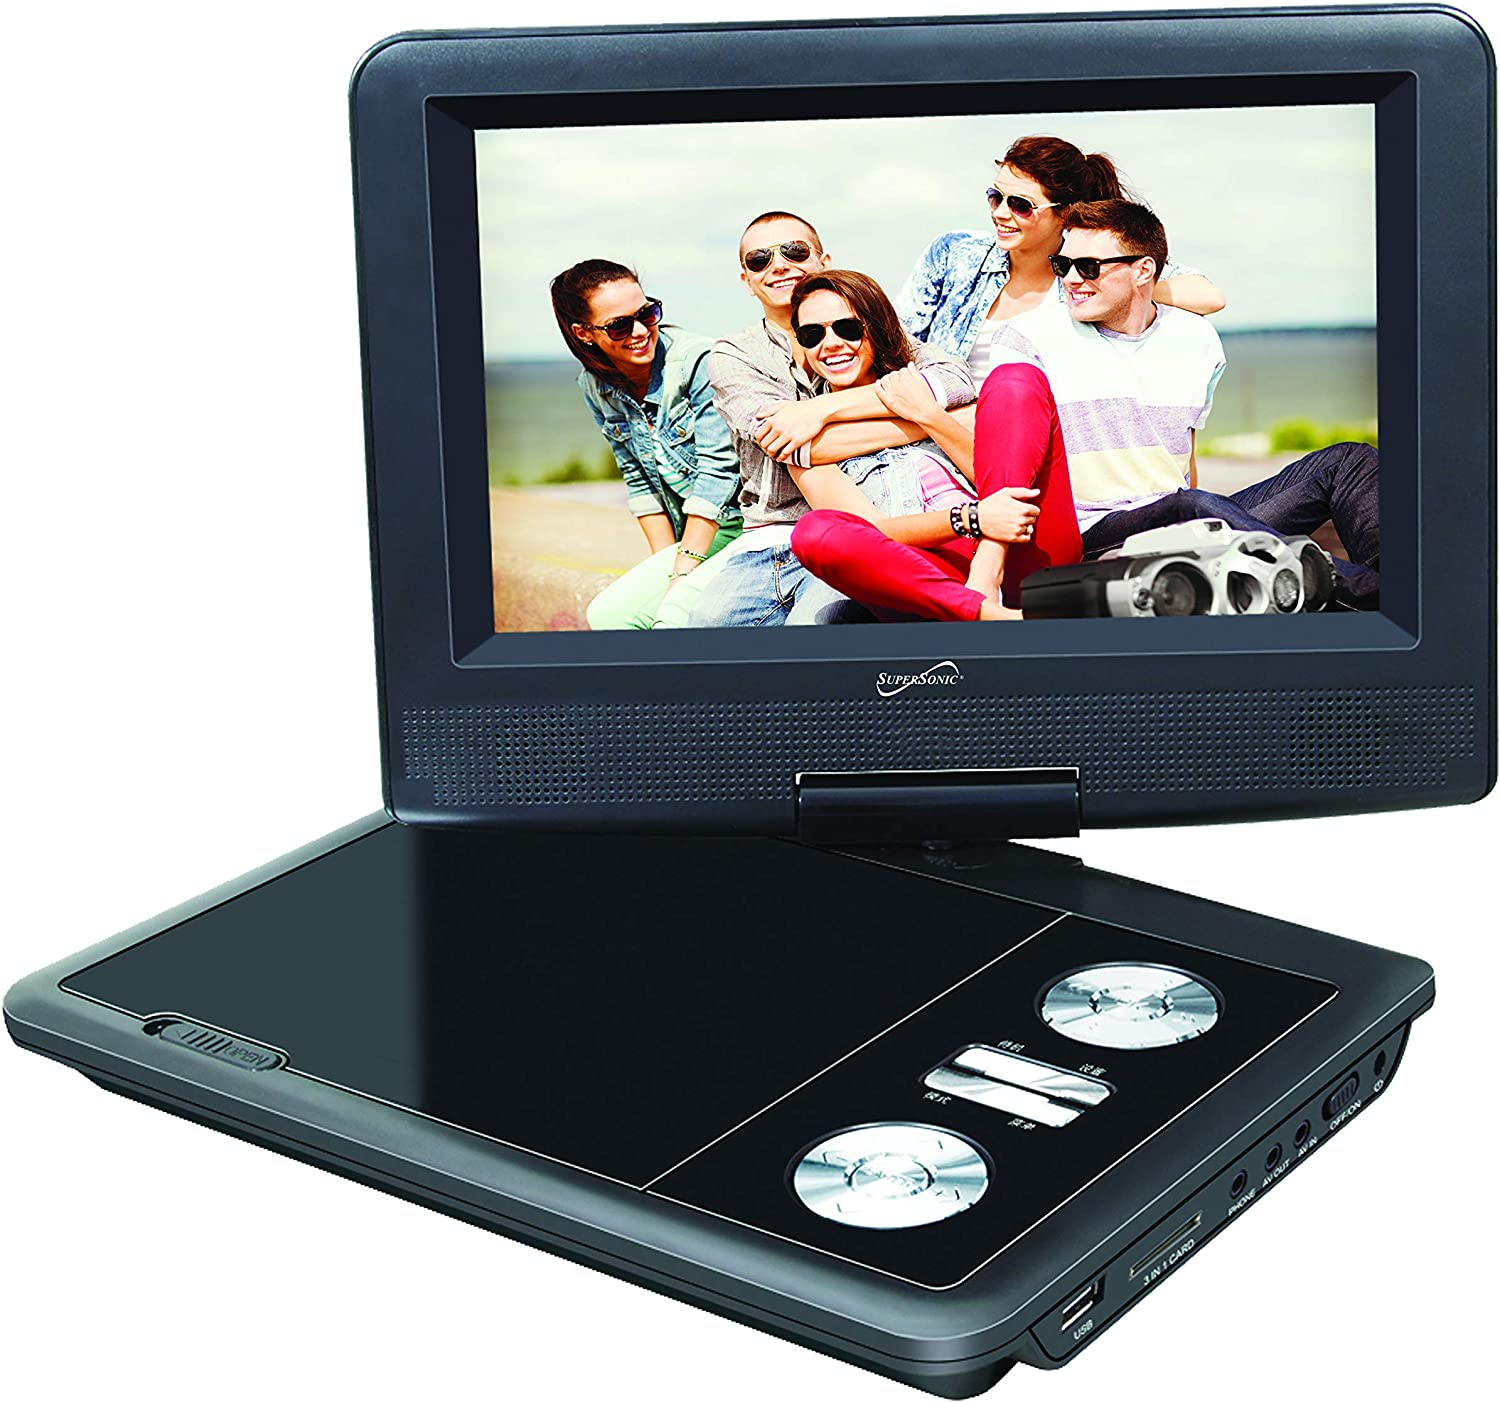 "SuperSonic SC-257 Portable DVD Player 7"" and Digital TV: USB and SD inputs with Built-in Lithium Ion Battery and Swivel Display"